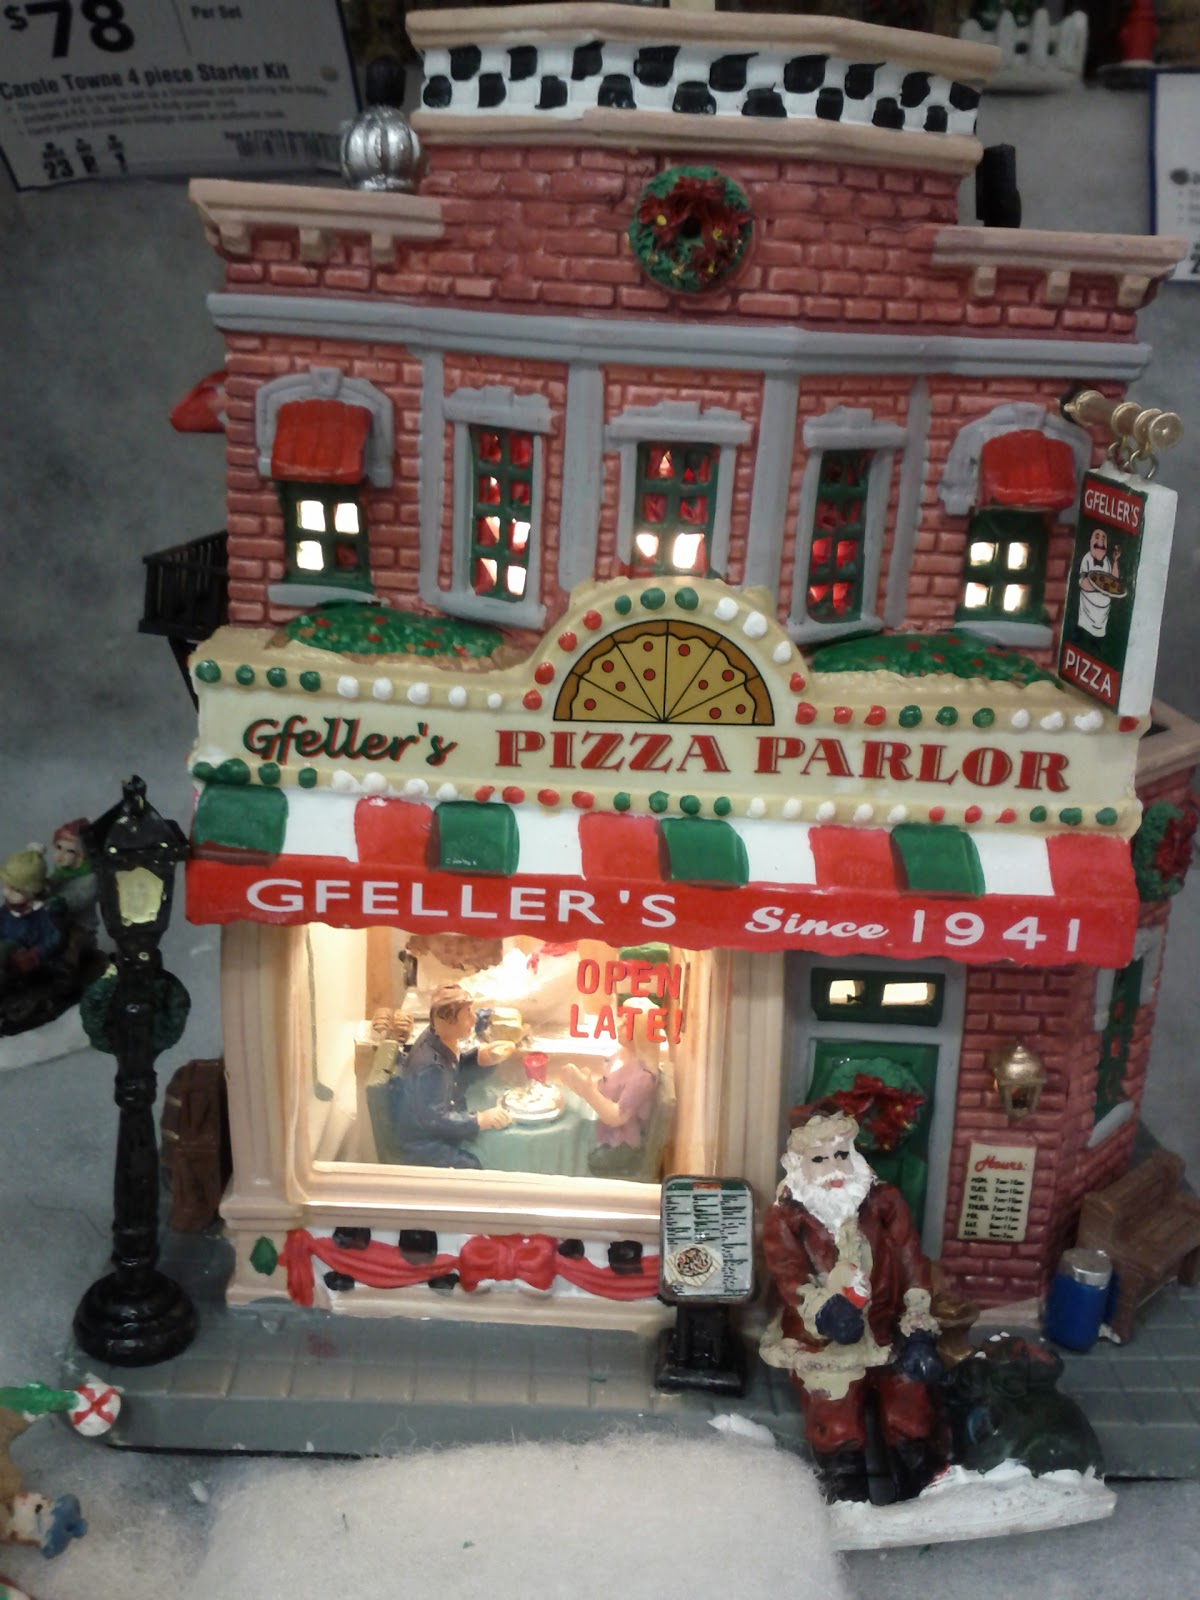 Gfeller's Pizza Parlor by Carole Towne at Lowes